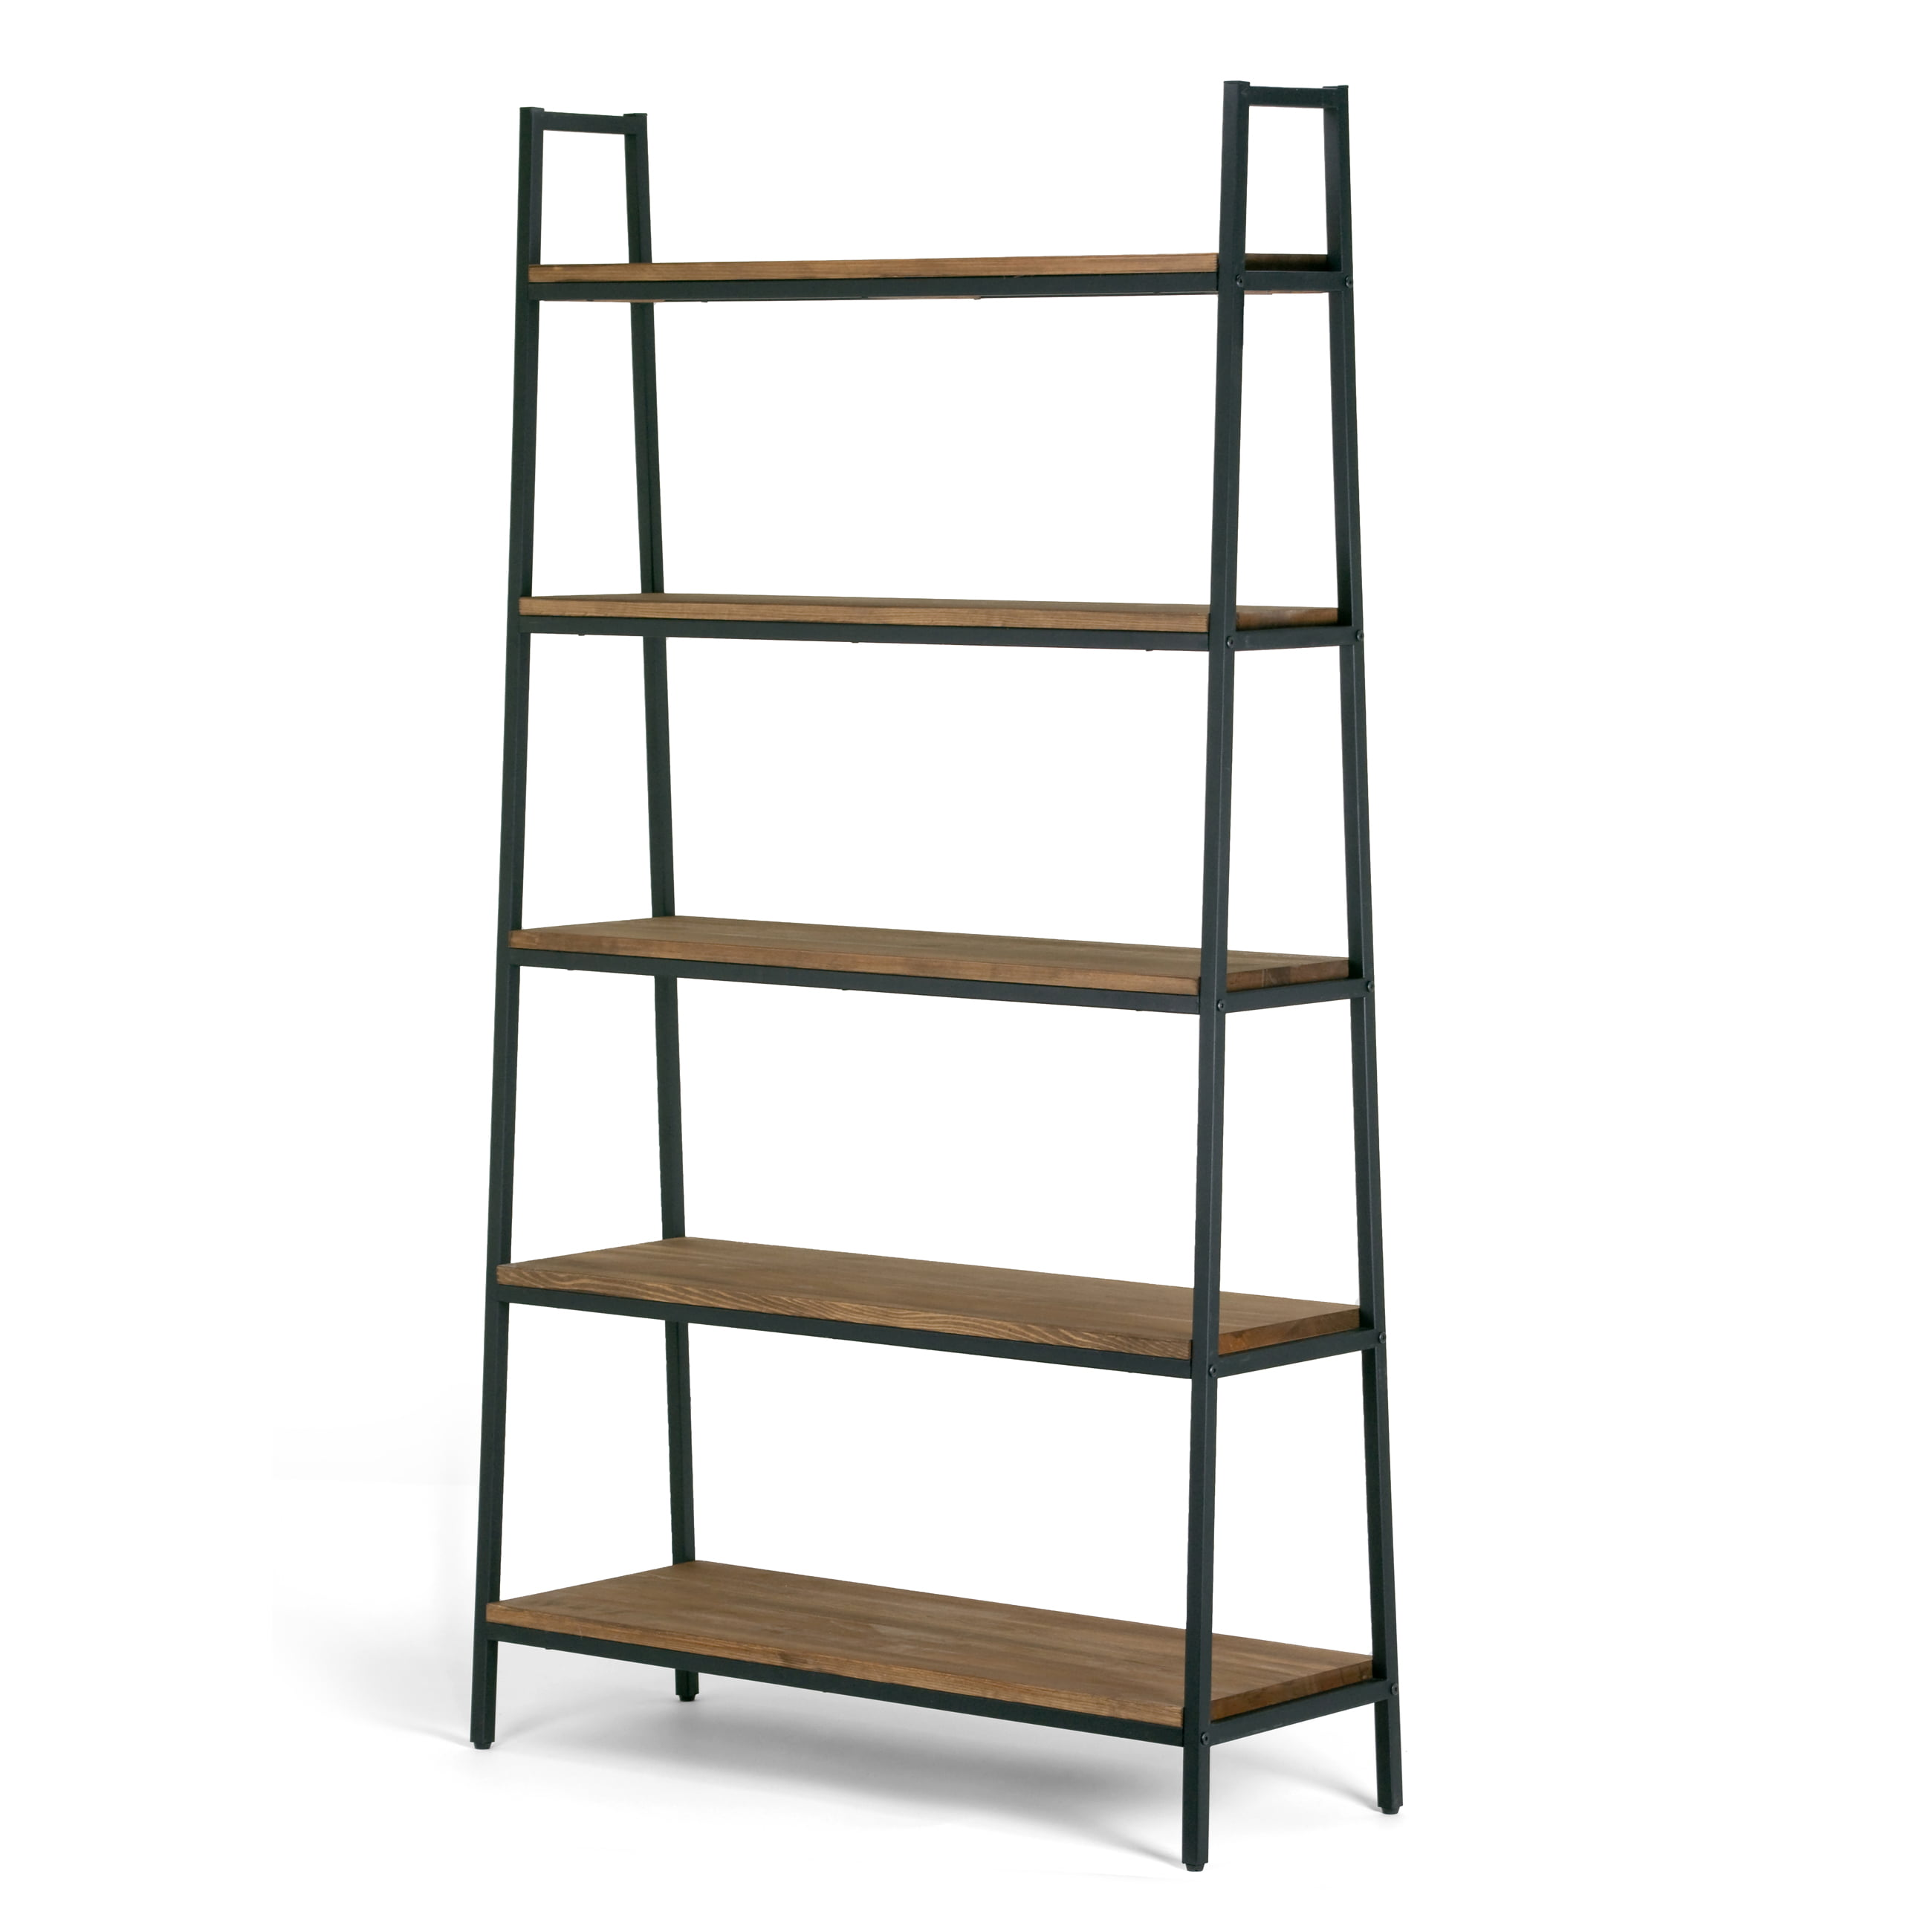 Ailis 71 5 Brown Pine Wood Metal Frame Etagere Bookcase Five Shelf Media Tower Walmart Com